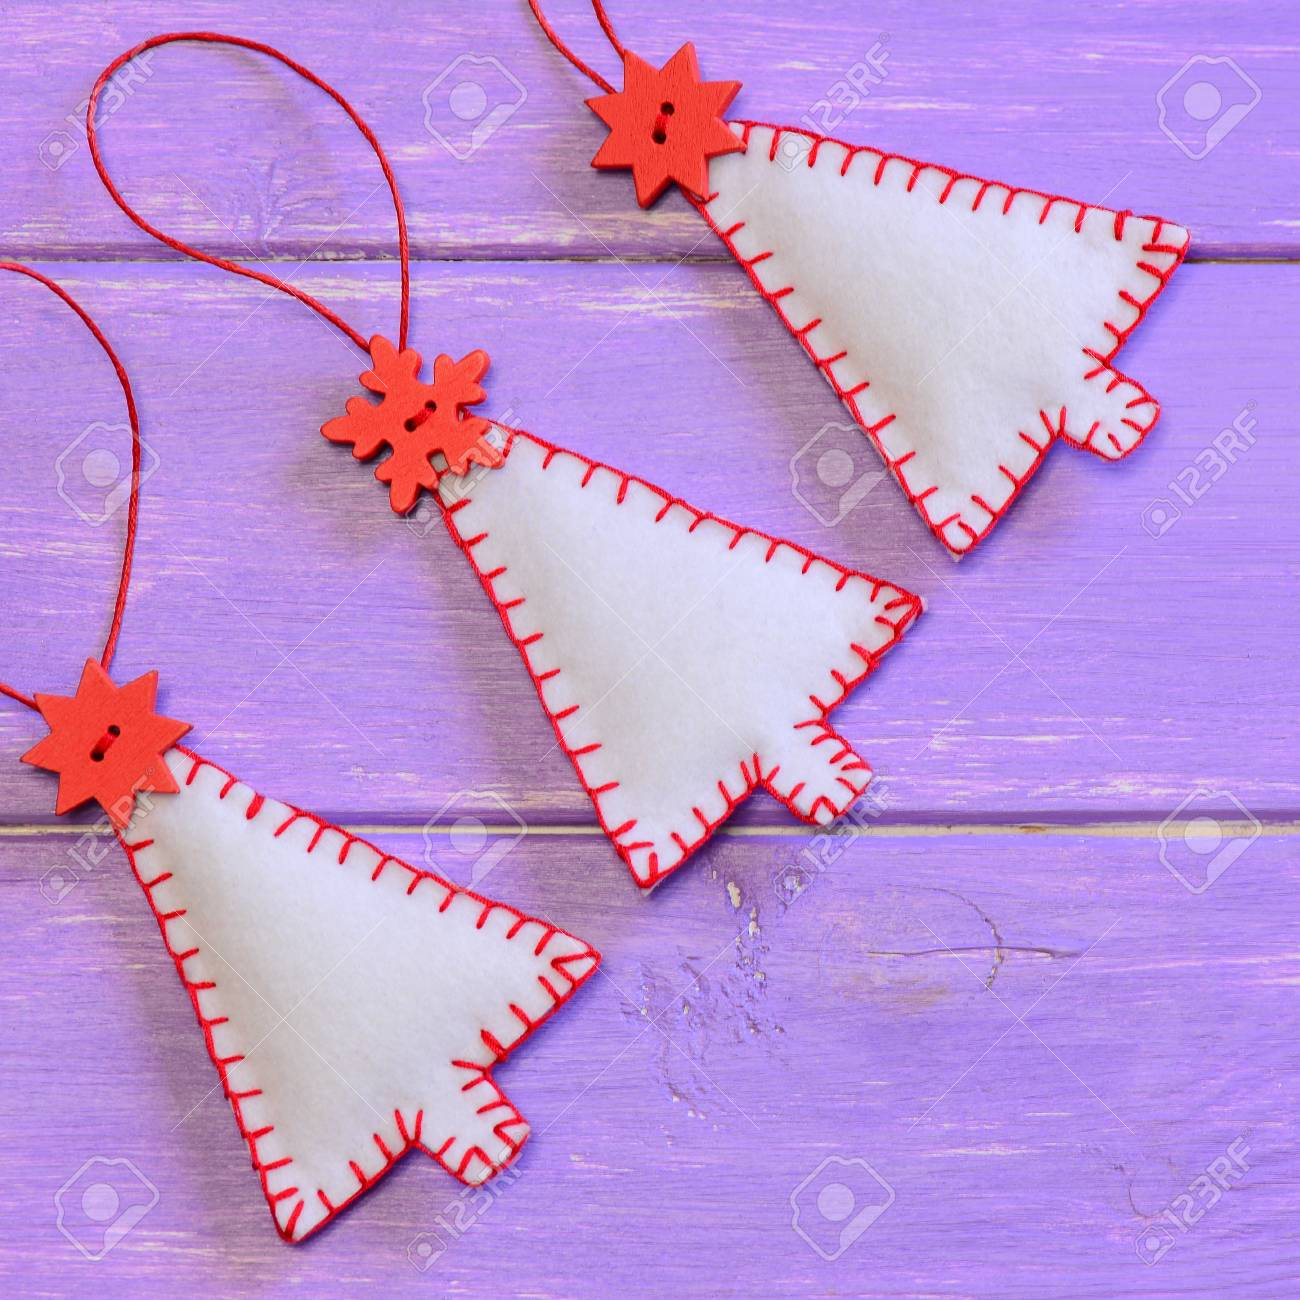 Christmas Trees Ornaments On A Purple Wooden Background Handmade